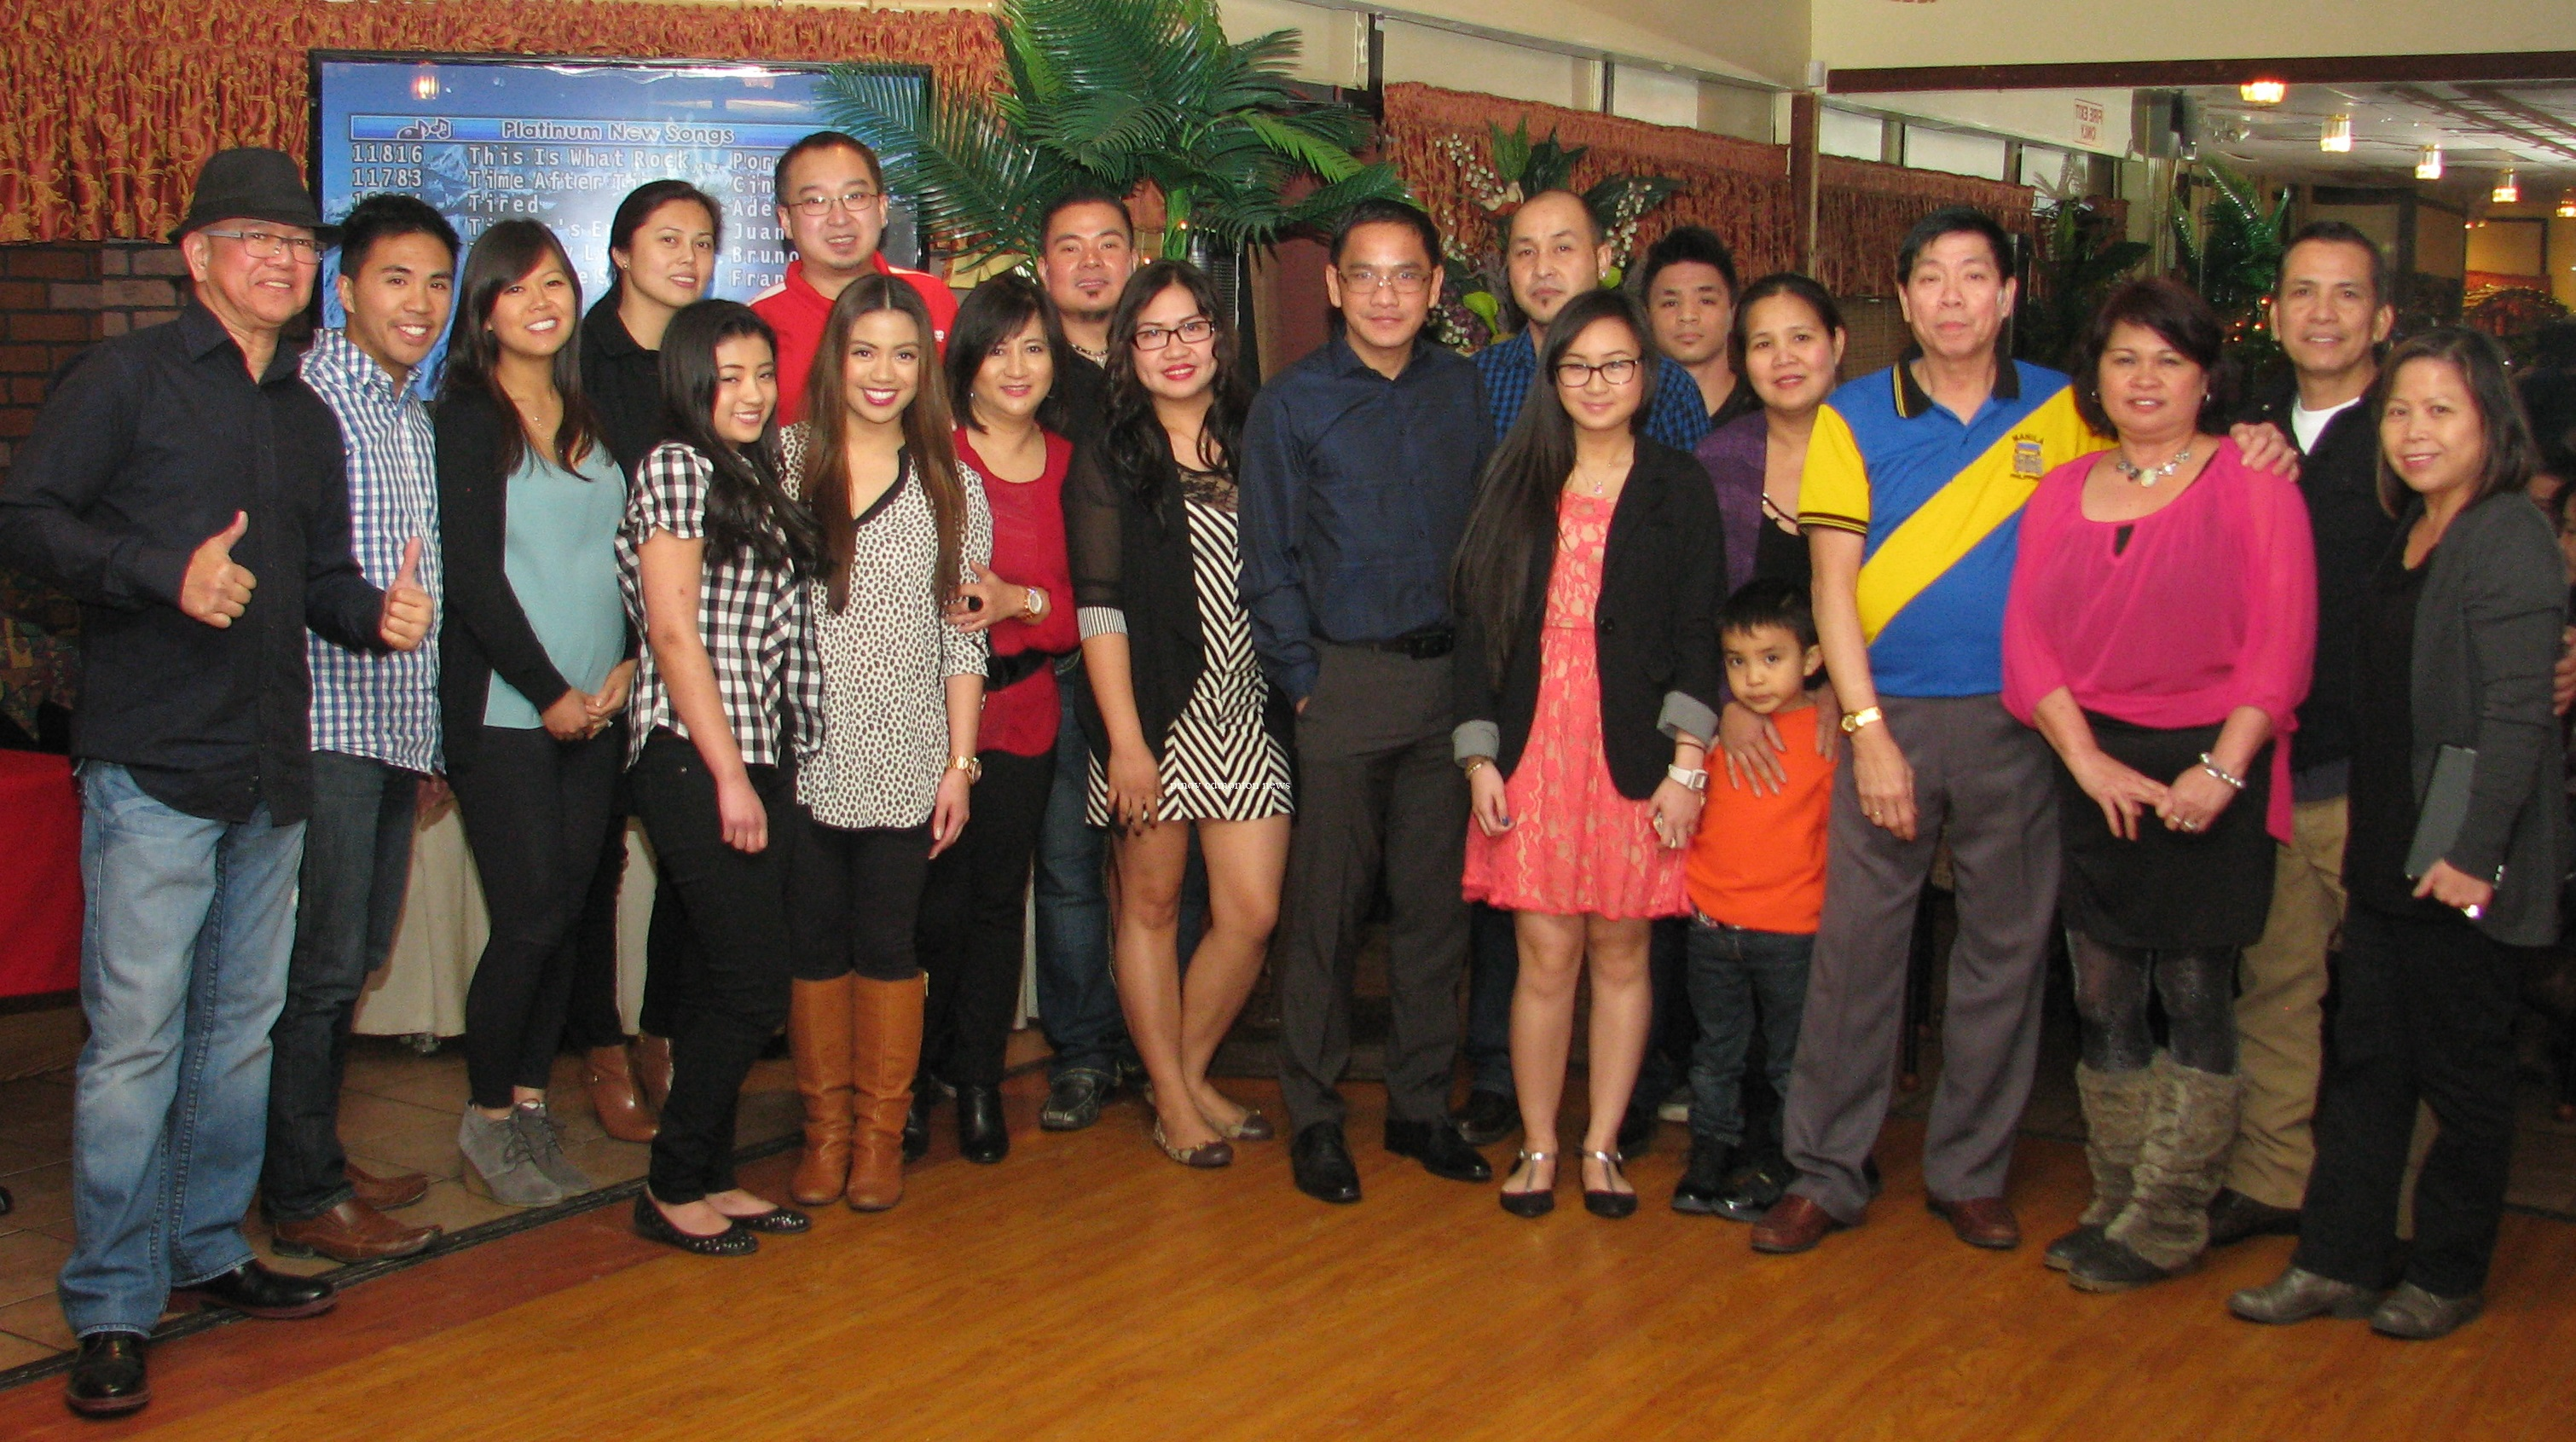 ... during the awards night, February 1, at Rolymie.(pinoy edmonton news